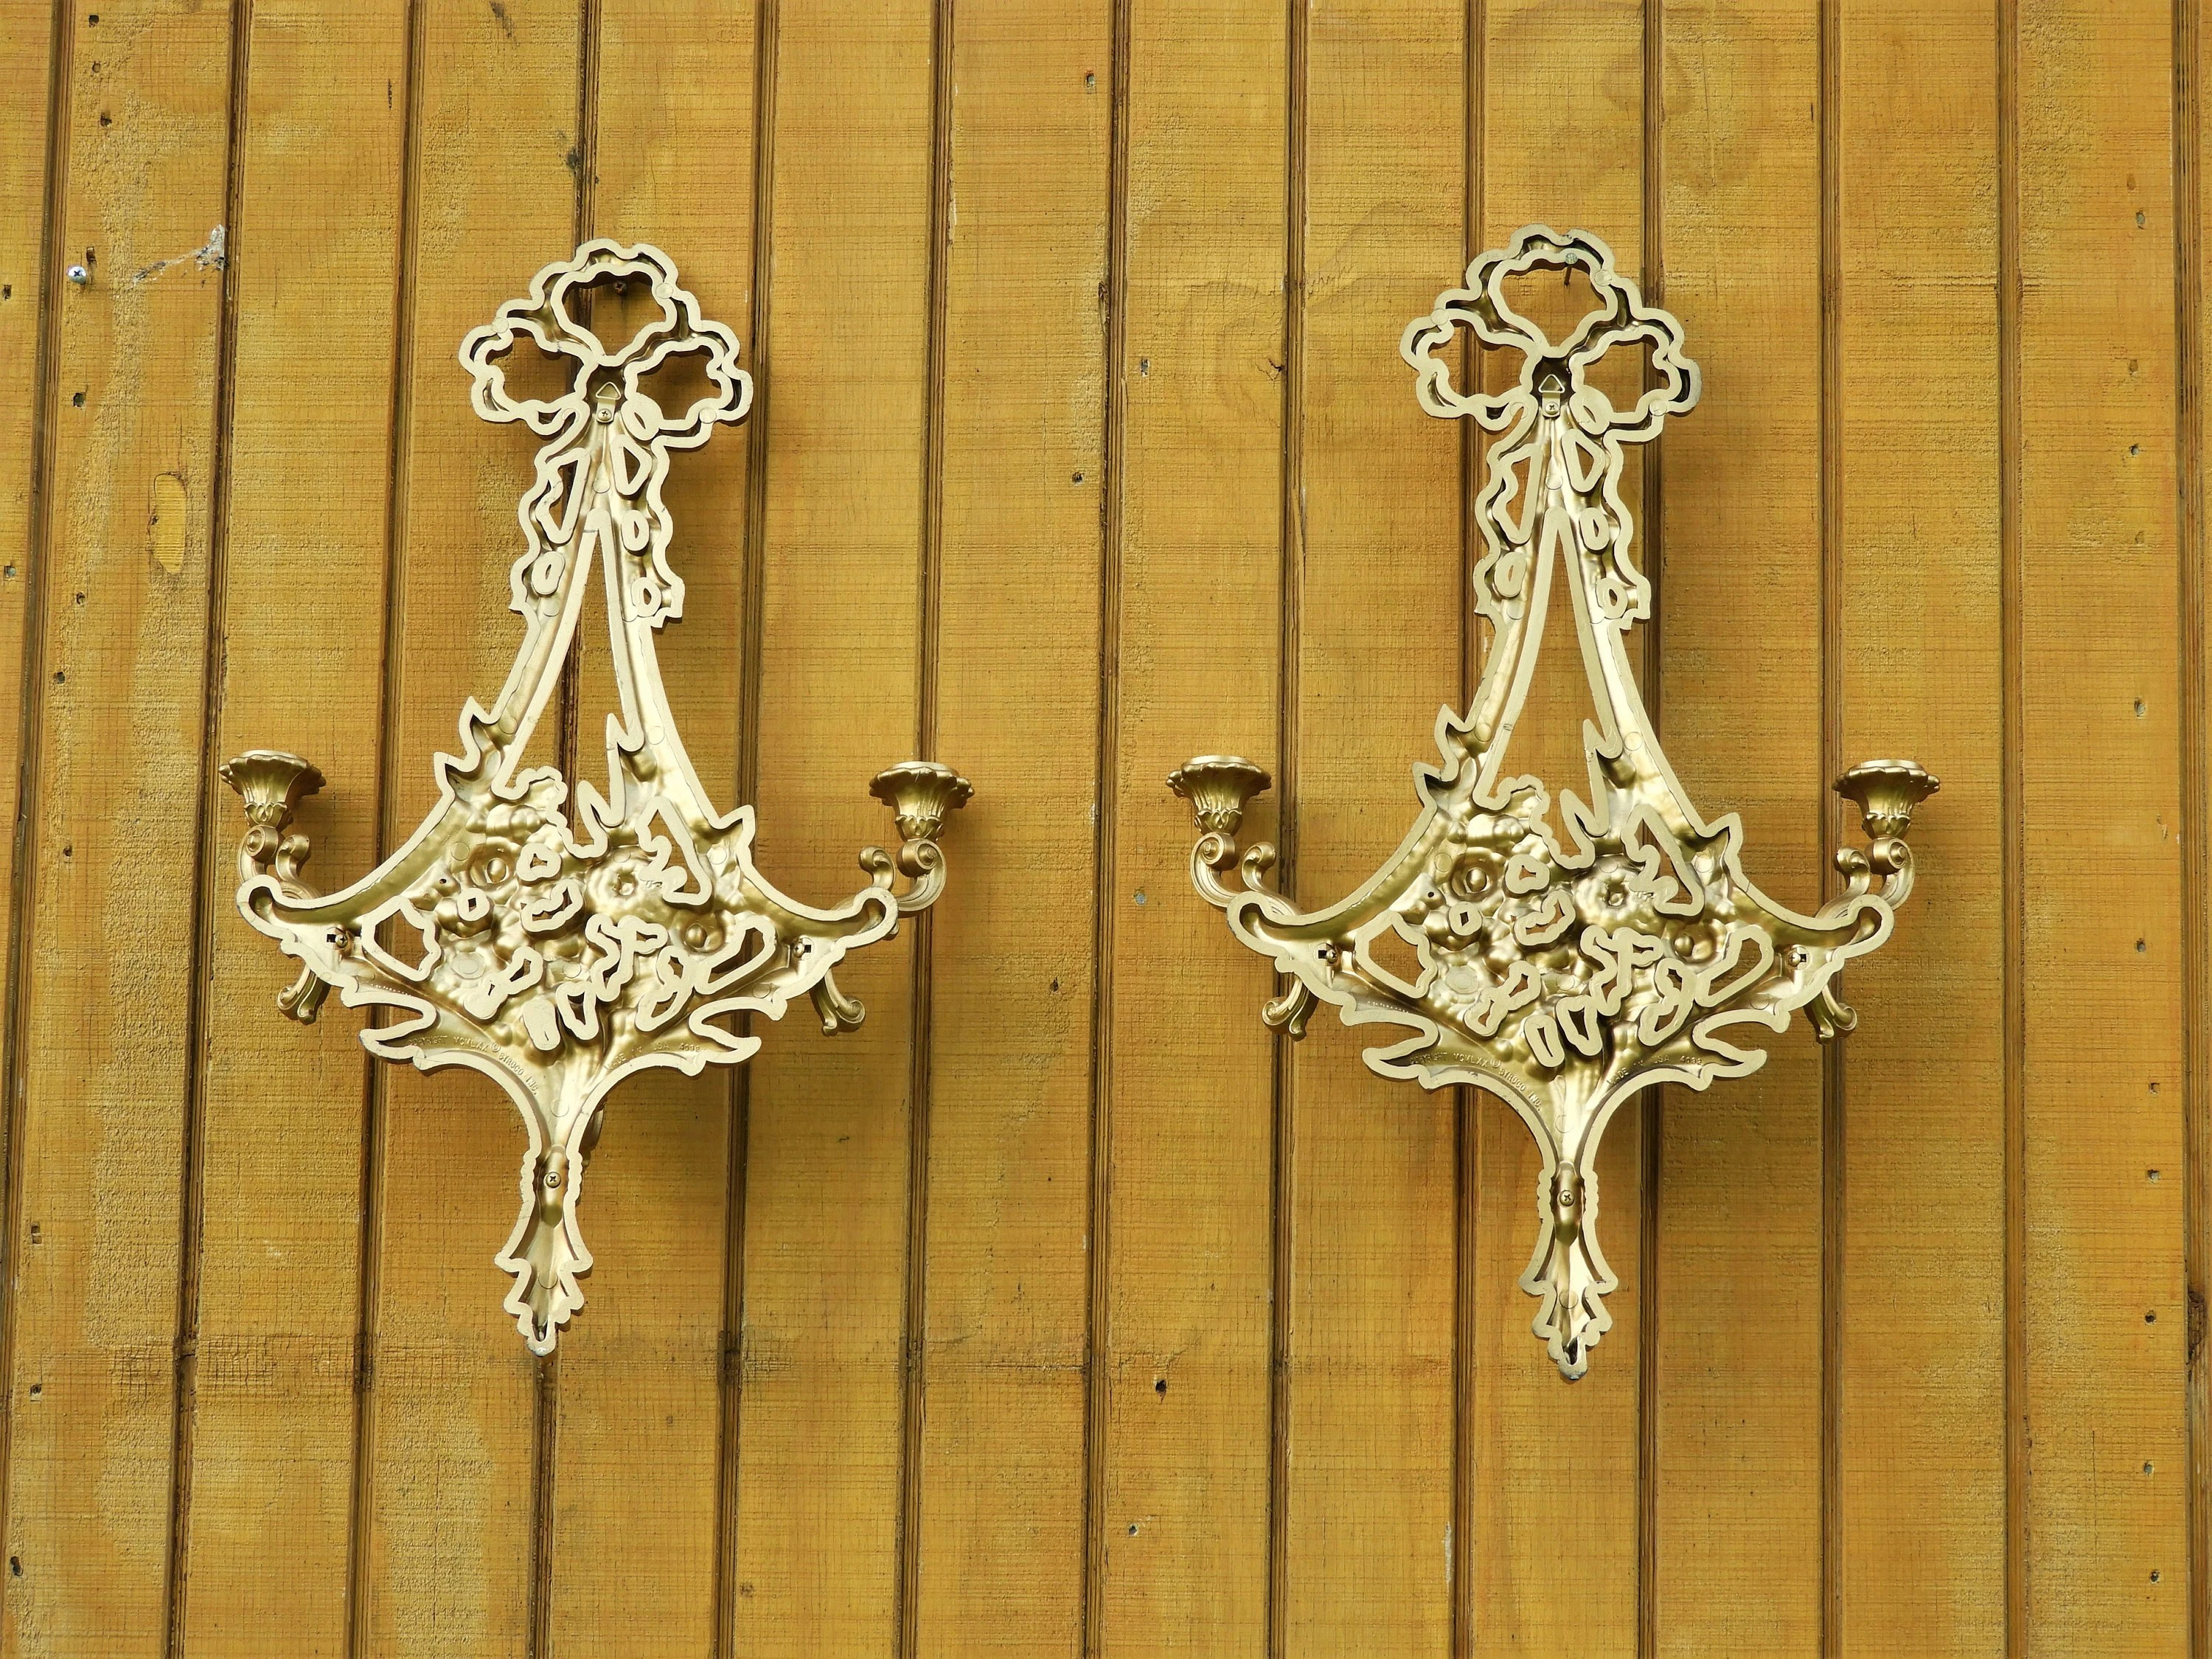 Vintage Wall Hanging Decor, Large Syroco Candelabra, Gold ... on Antique Style Candle Holder Sconces id=67677